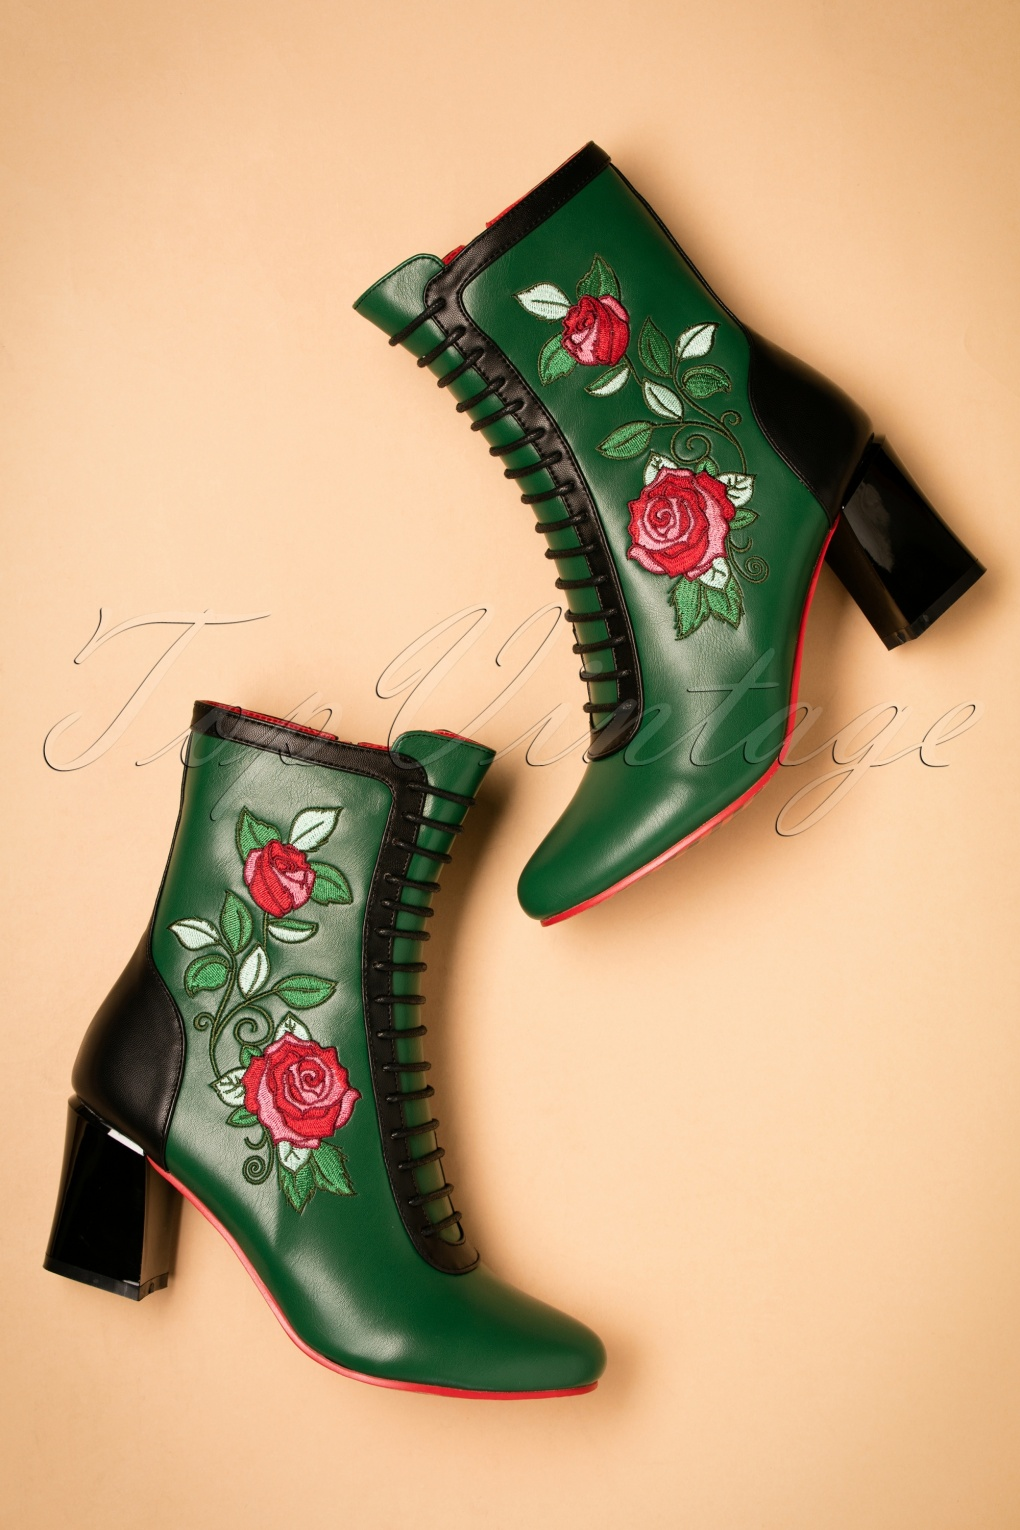 Vintage Style Shoes, Vintage Inspired Shoes 60s Fantasy Floral Booties in Green £85.38 AT vintagedancer.com